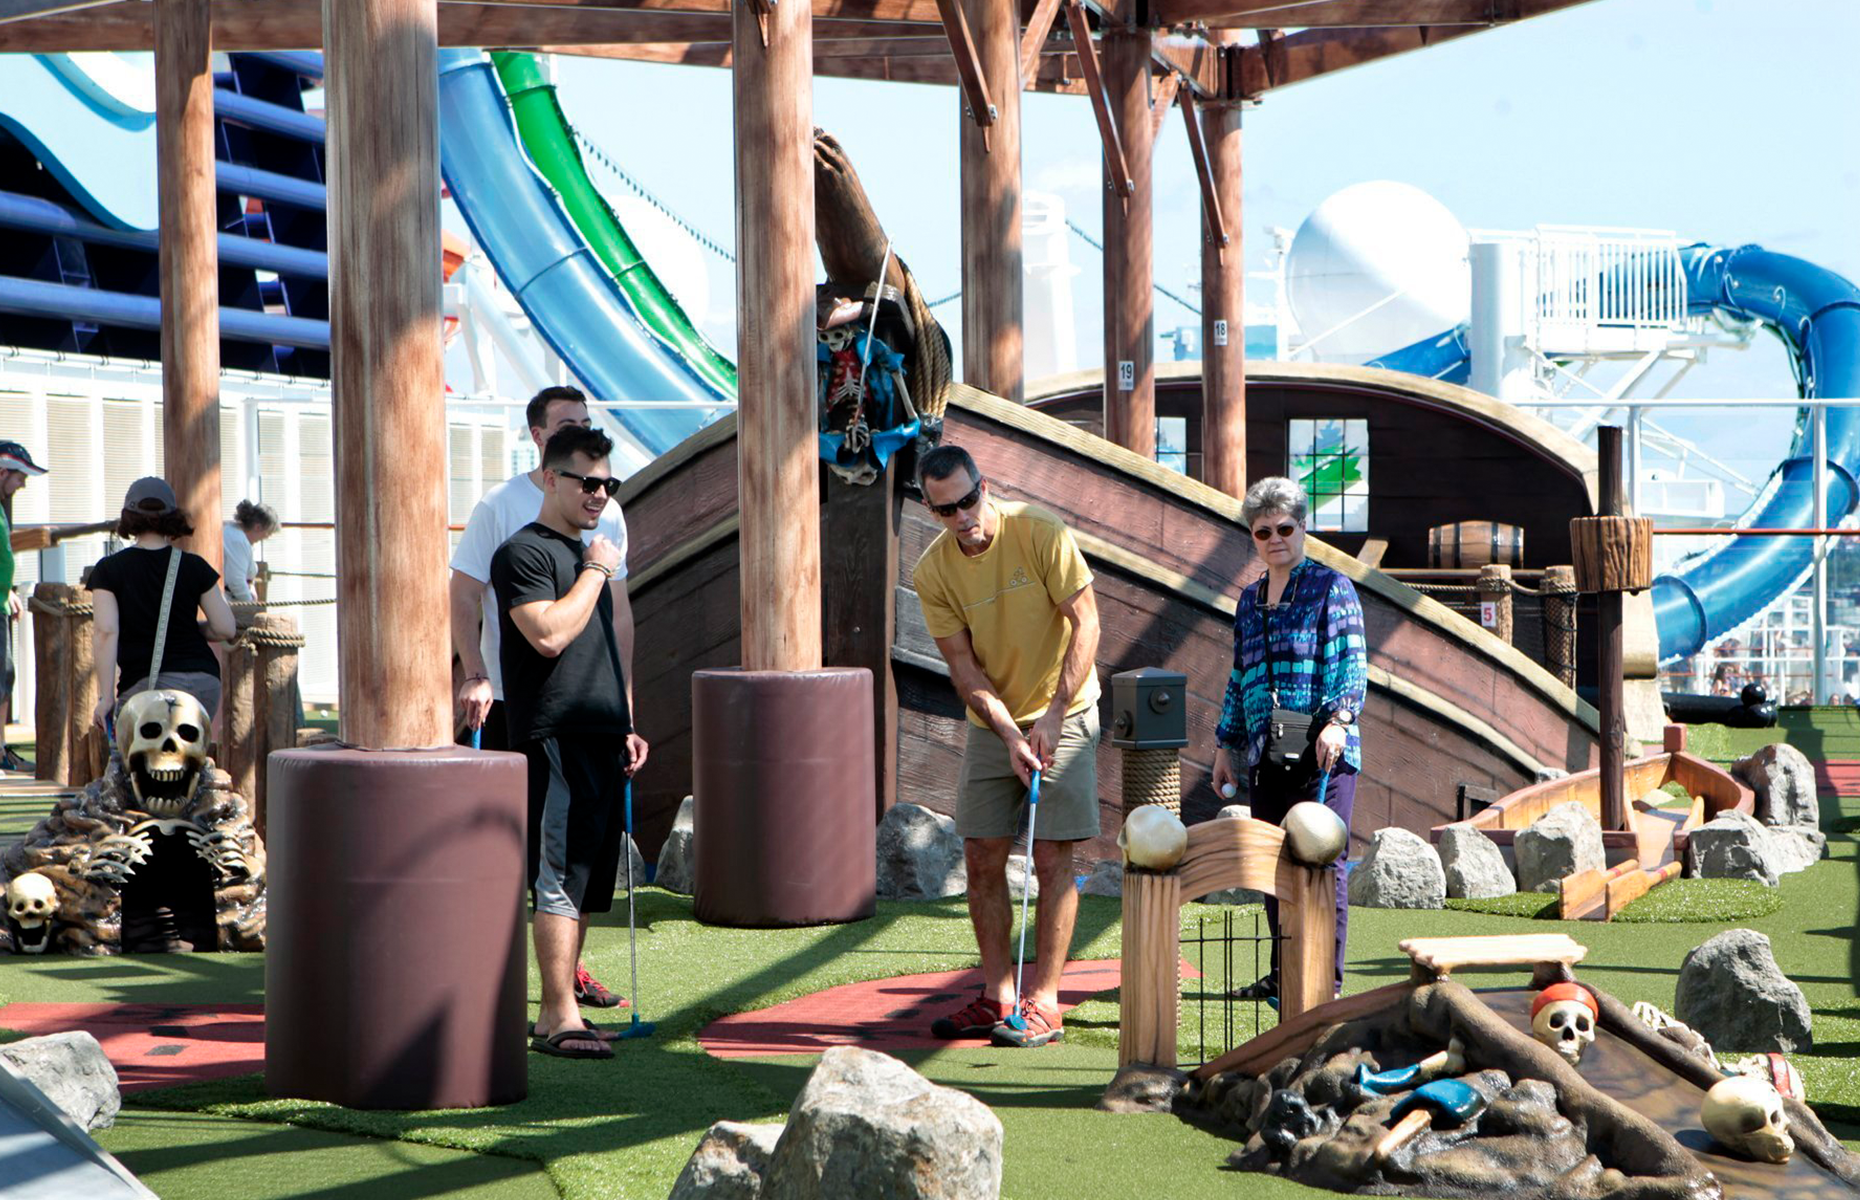 Slide 12 of 31: Passengers play mini-golf in the sports complex on board the Norwegian Getaway, the newest ship from Norwegian Cruise Lines on March 1, 2014, in Miami. (Marsha Halper/Miami Herald/MCT via Getty Images)